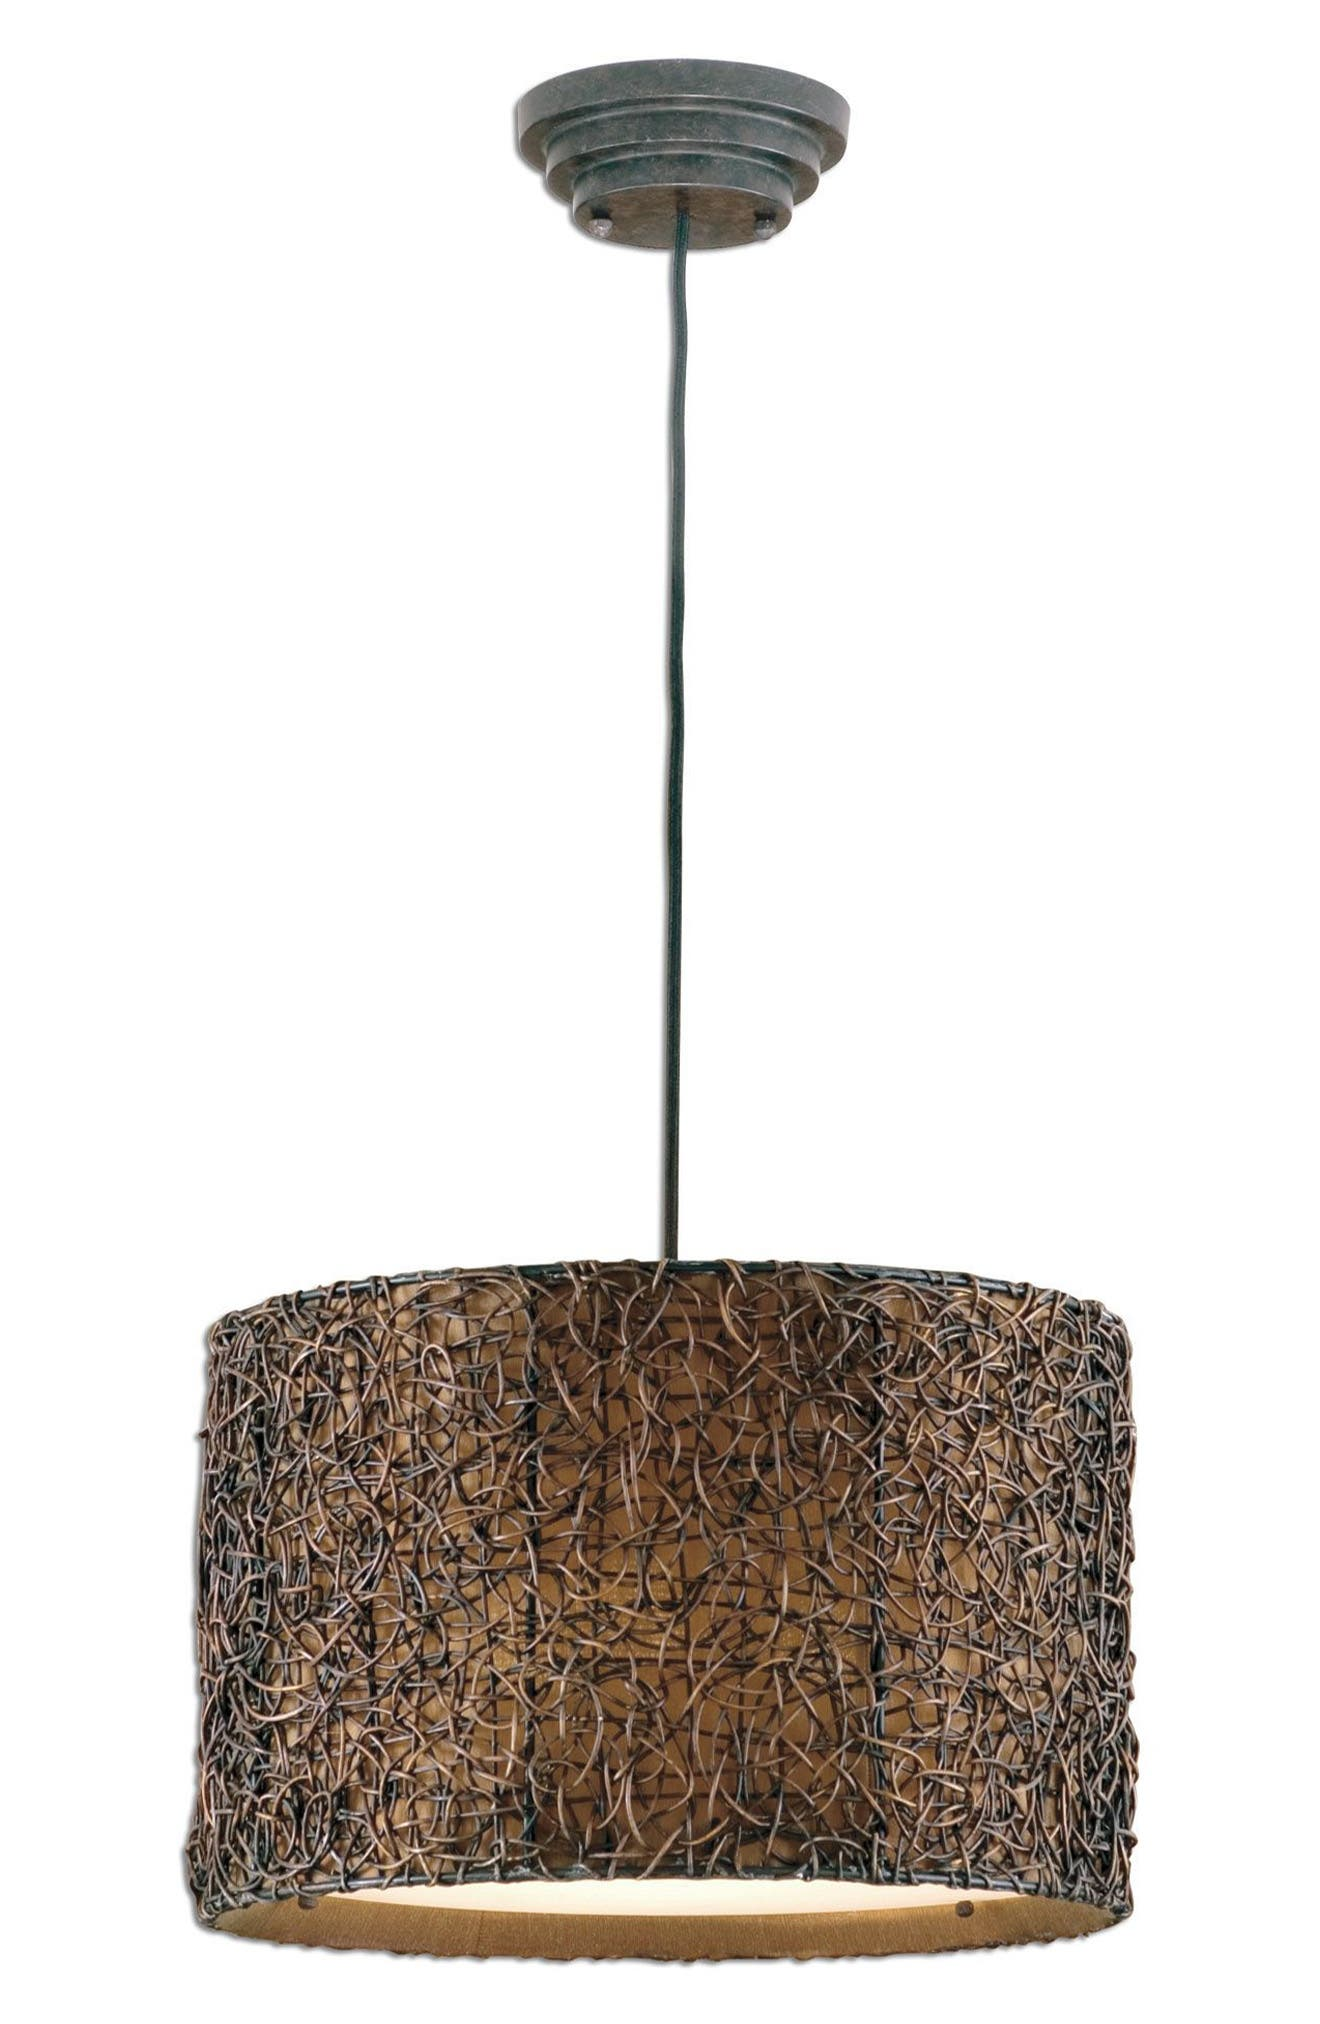 Main Image - Uttermost Knotted Rattan Pendant Lamp